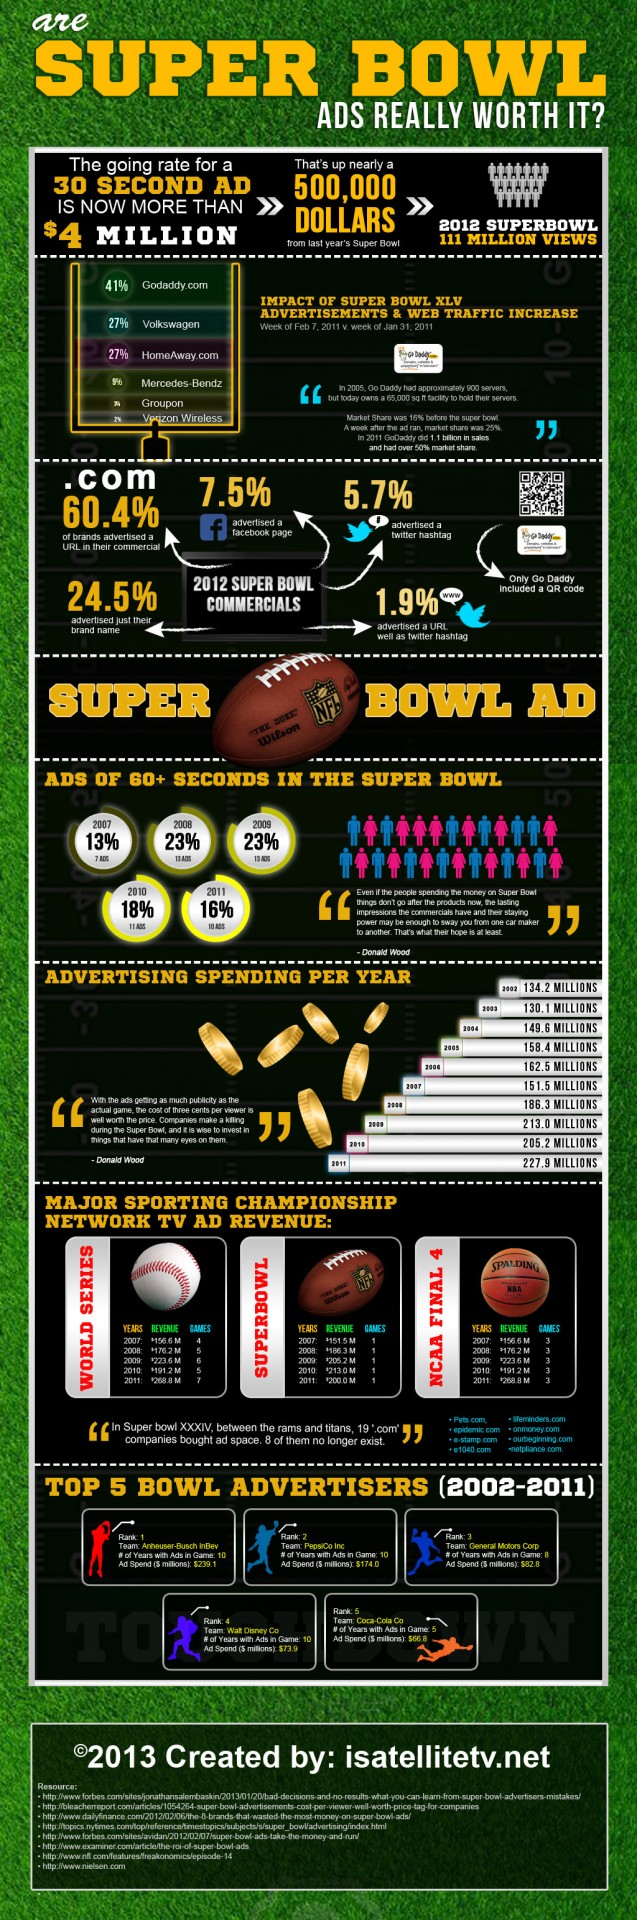 Superbowl Ads: Are They Really Worthwhile?